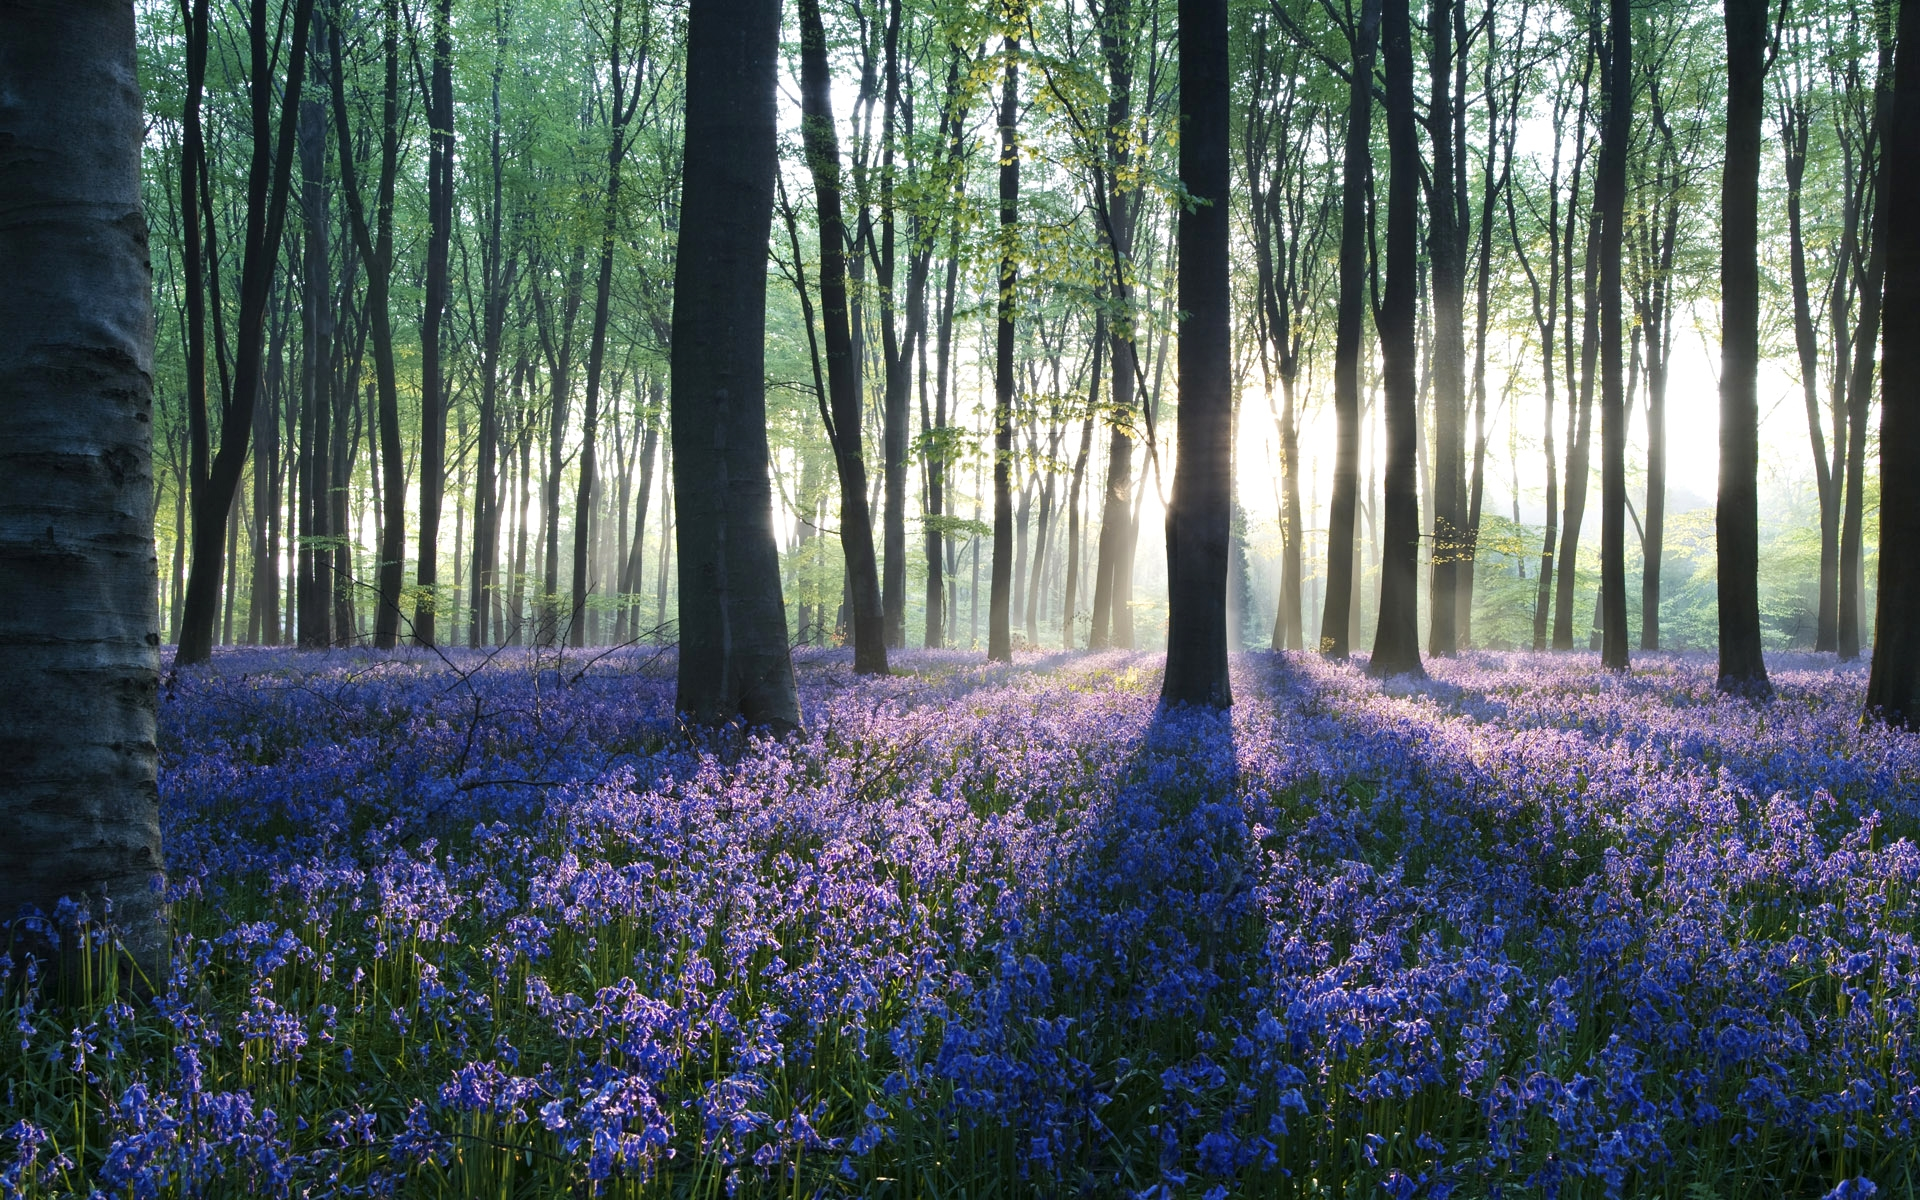 bluebell images